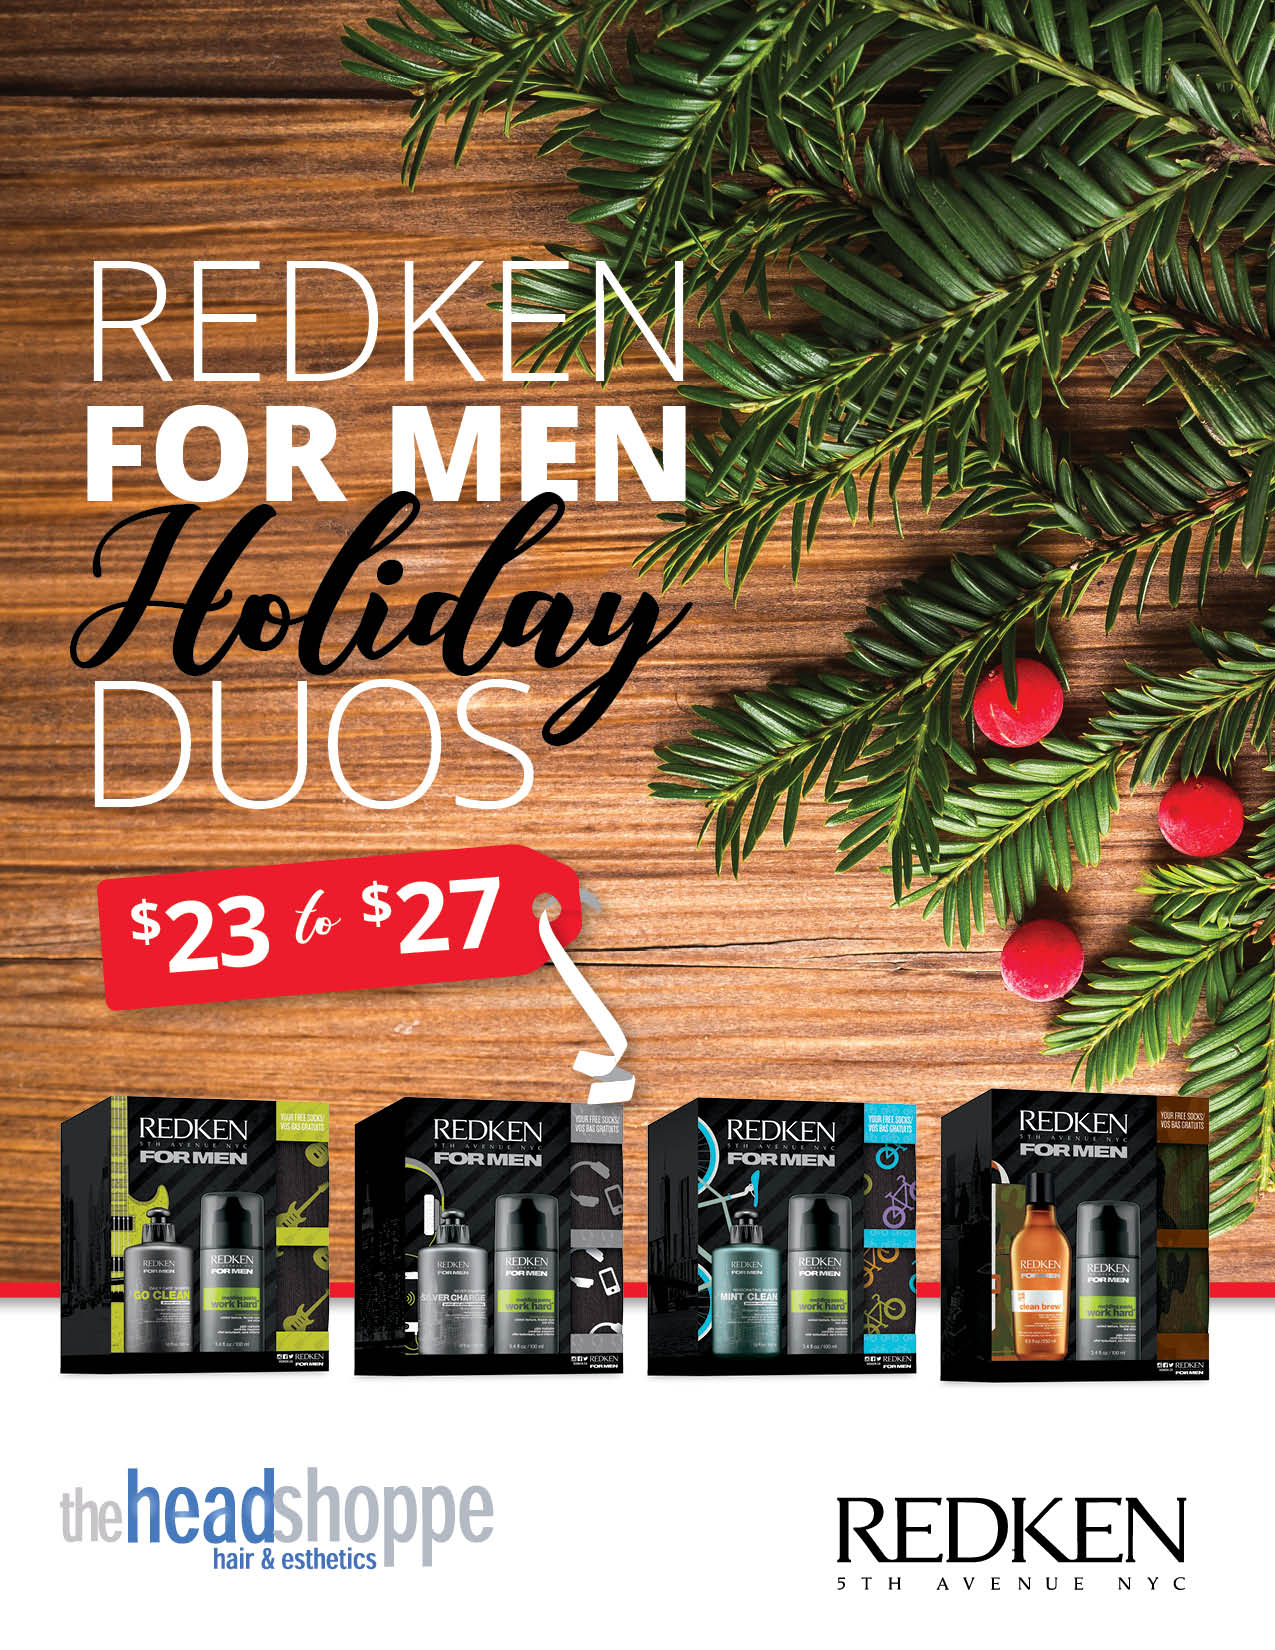 Redken for Men Duos